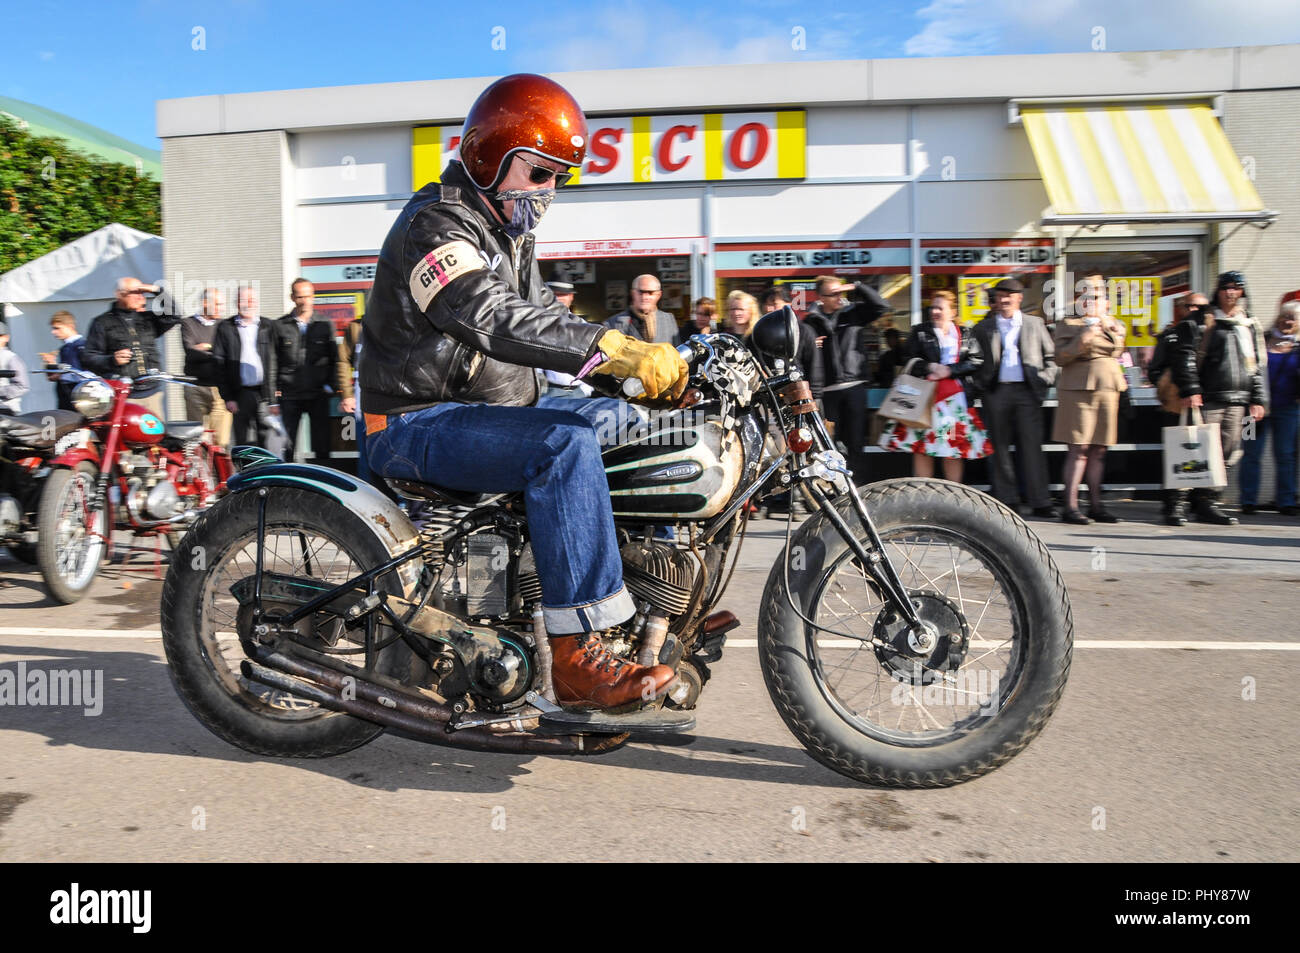 Period motorcyclist in retro leathers at the Goodwood Revival outside the retro Tesco shop, store. Vintage, classic, timeless. Step back in time - Stock Image